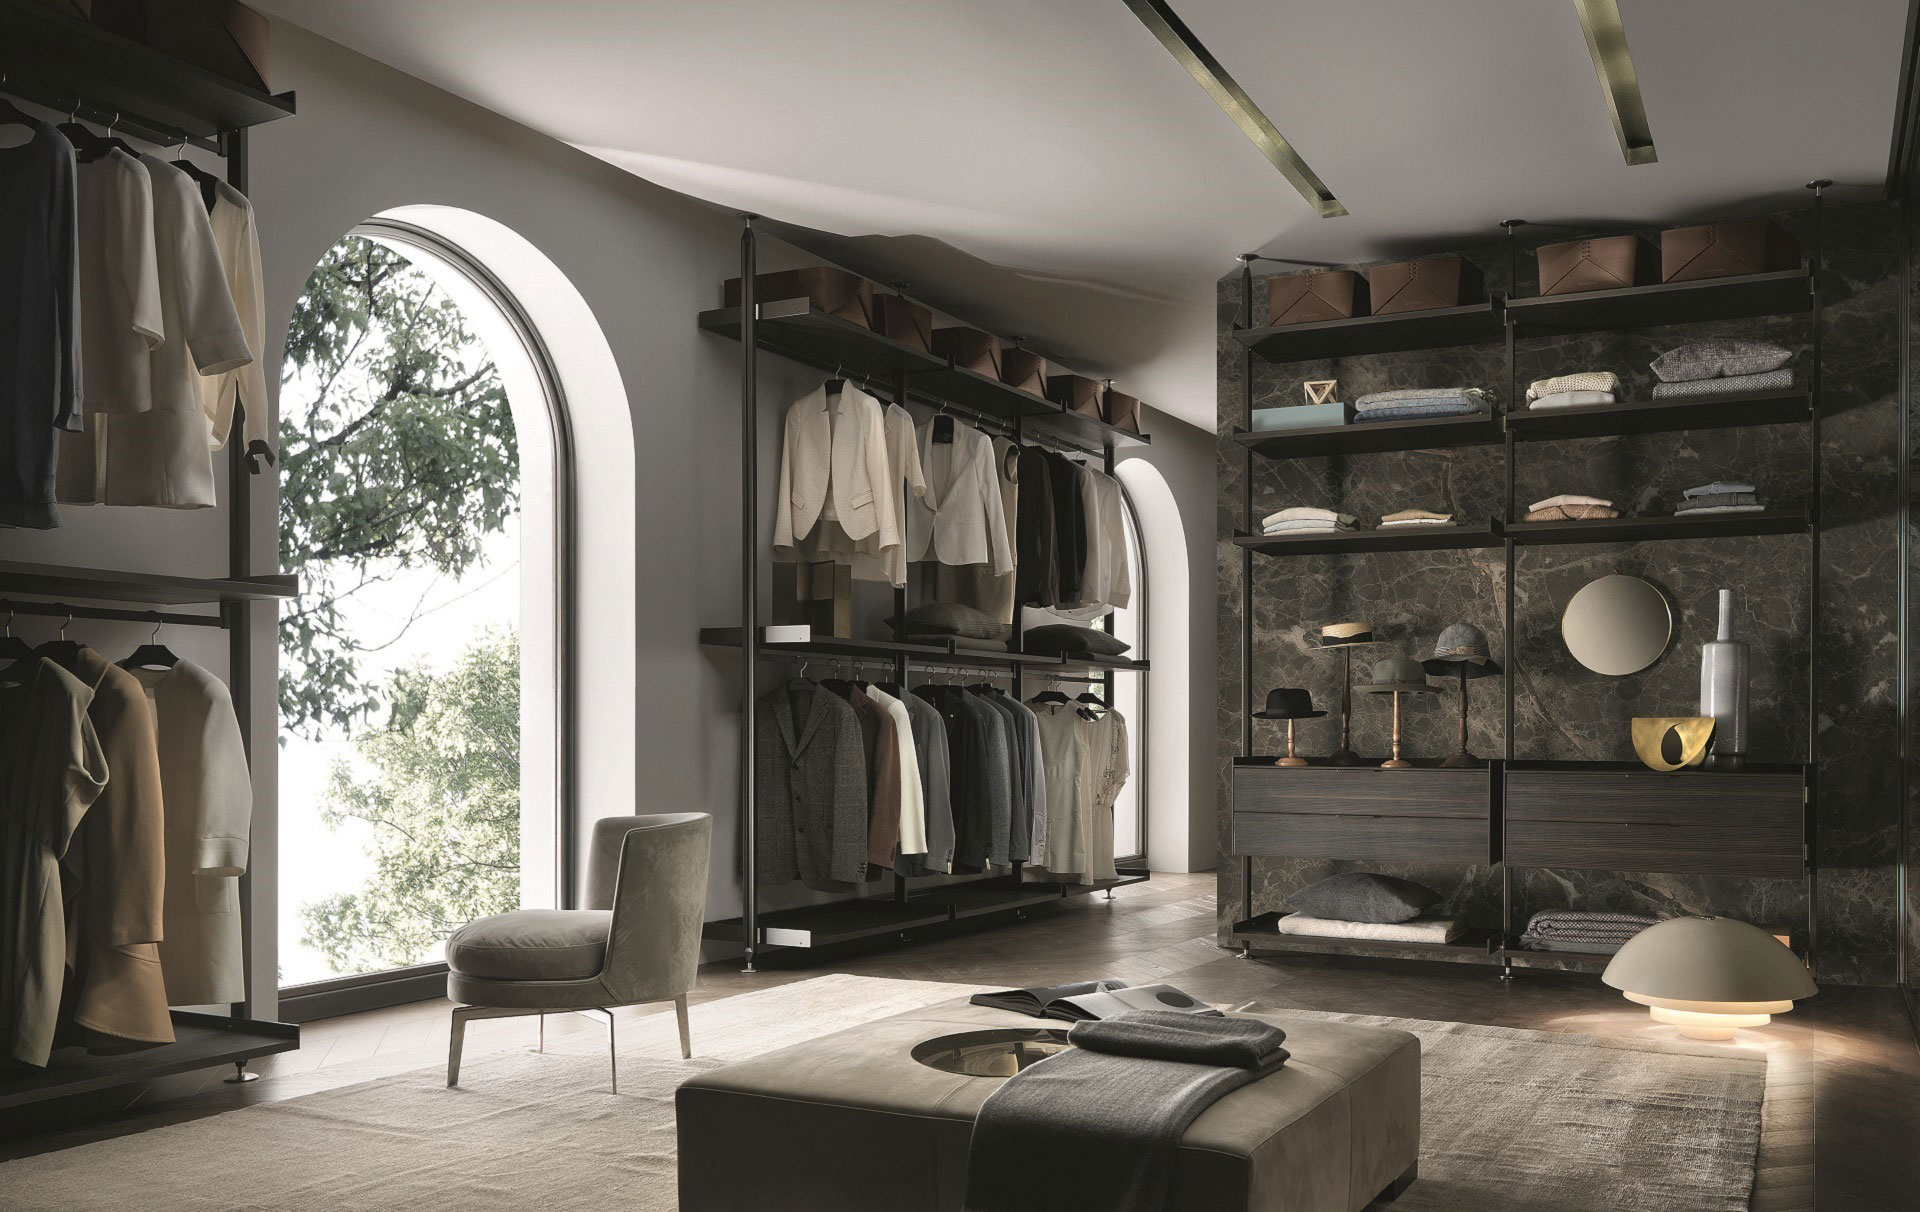 Walk-in wardrobe. Rimadesio Zenit system furniture. Available at Dream Design Interiors